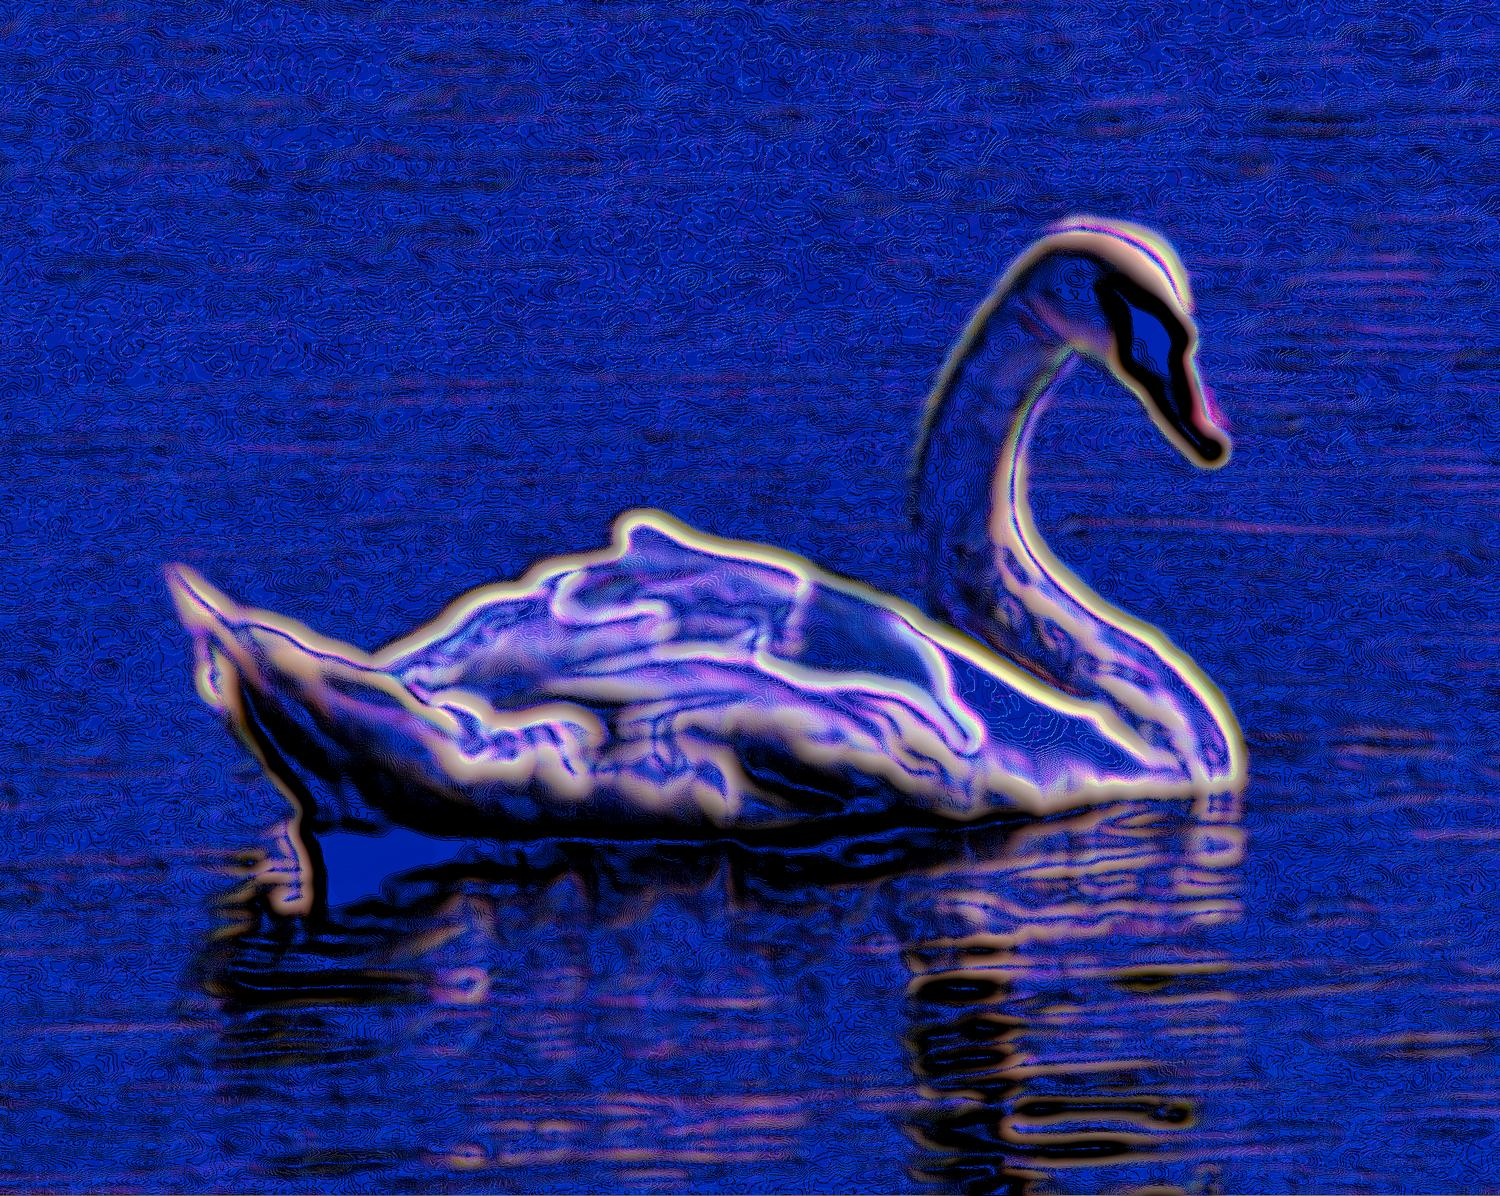 - Electric Swan - Exhibit in the artist's studio/gallery - Techno-Impressionist Museum - Techno-Impressionism - art - beautiful - photo photography picture - by Tony Karp